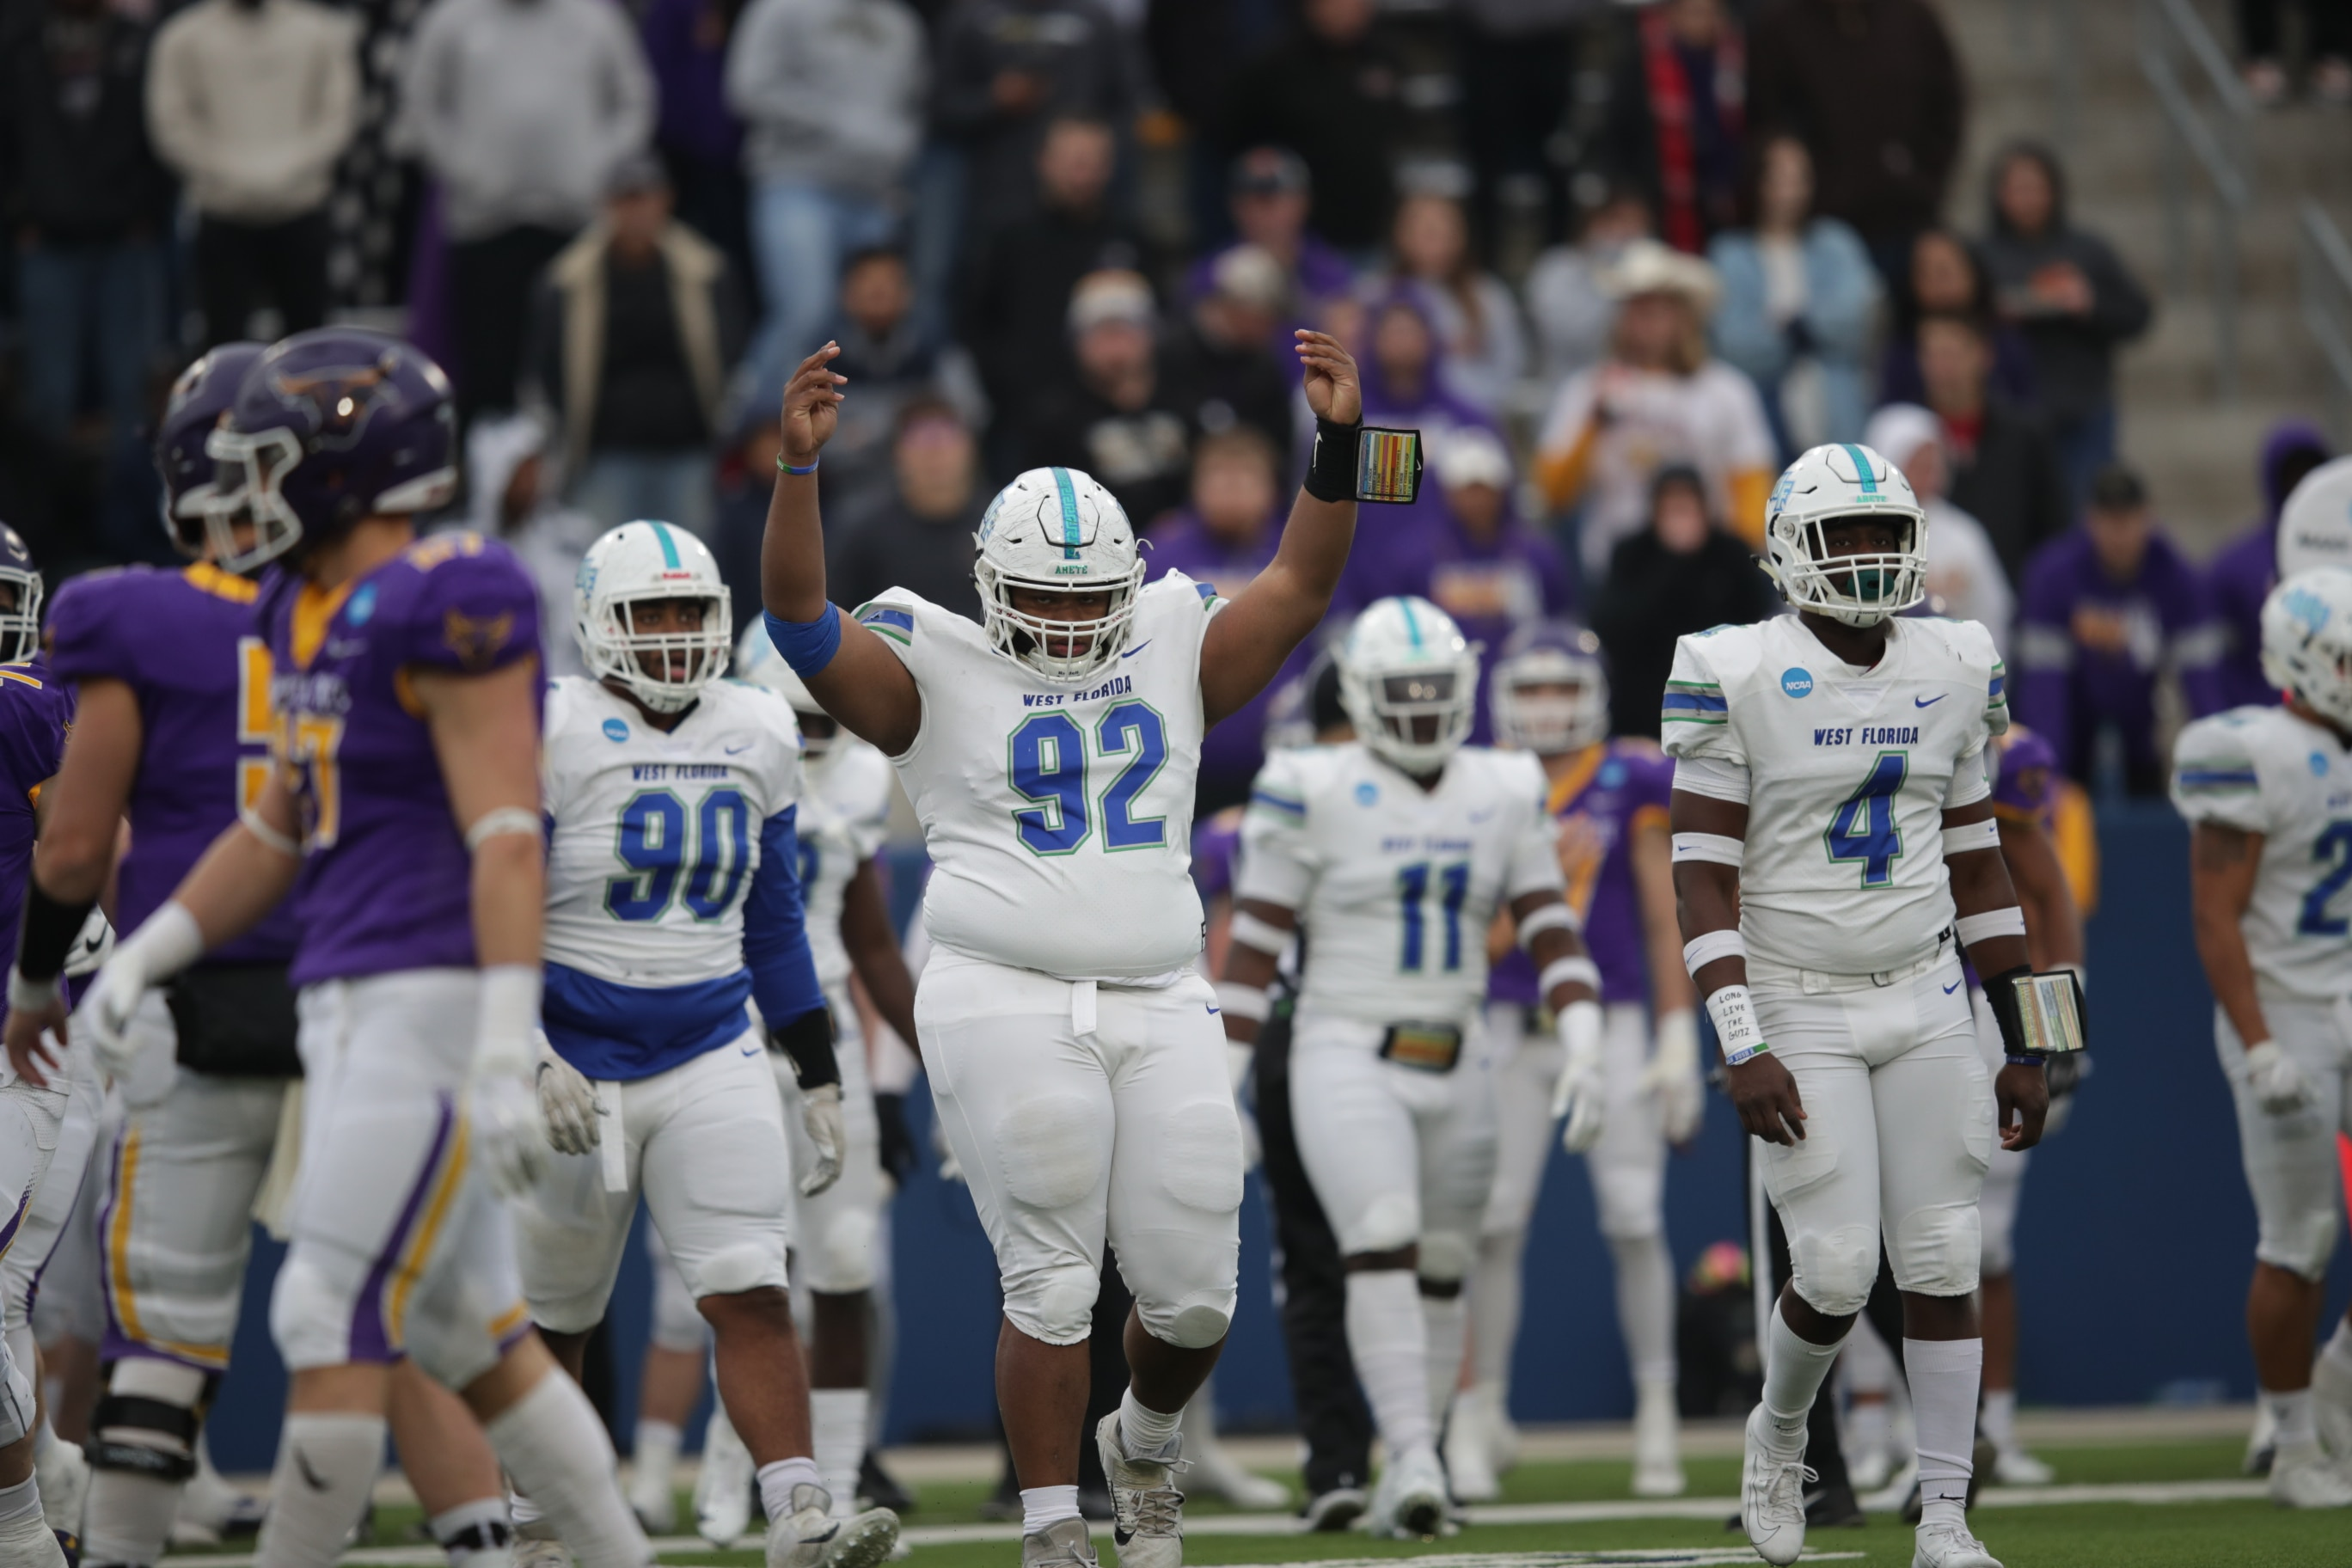 West Florida Wins The 2019 Dii Football Championship In A Record Setting 48 40 Thriller Ncaa Com